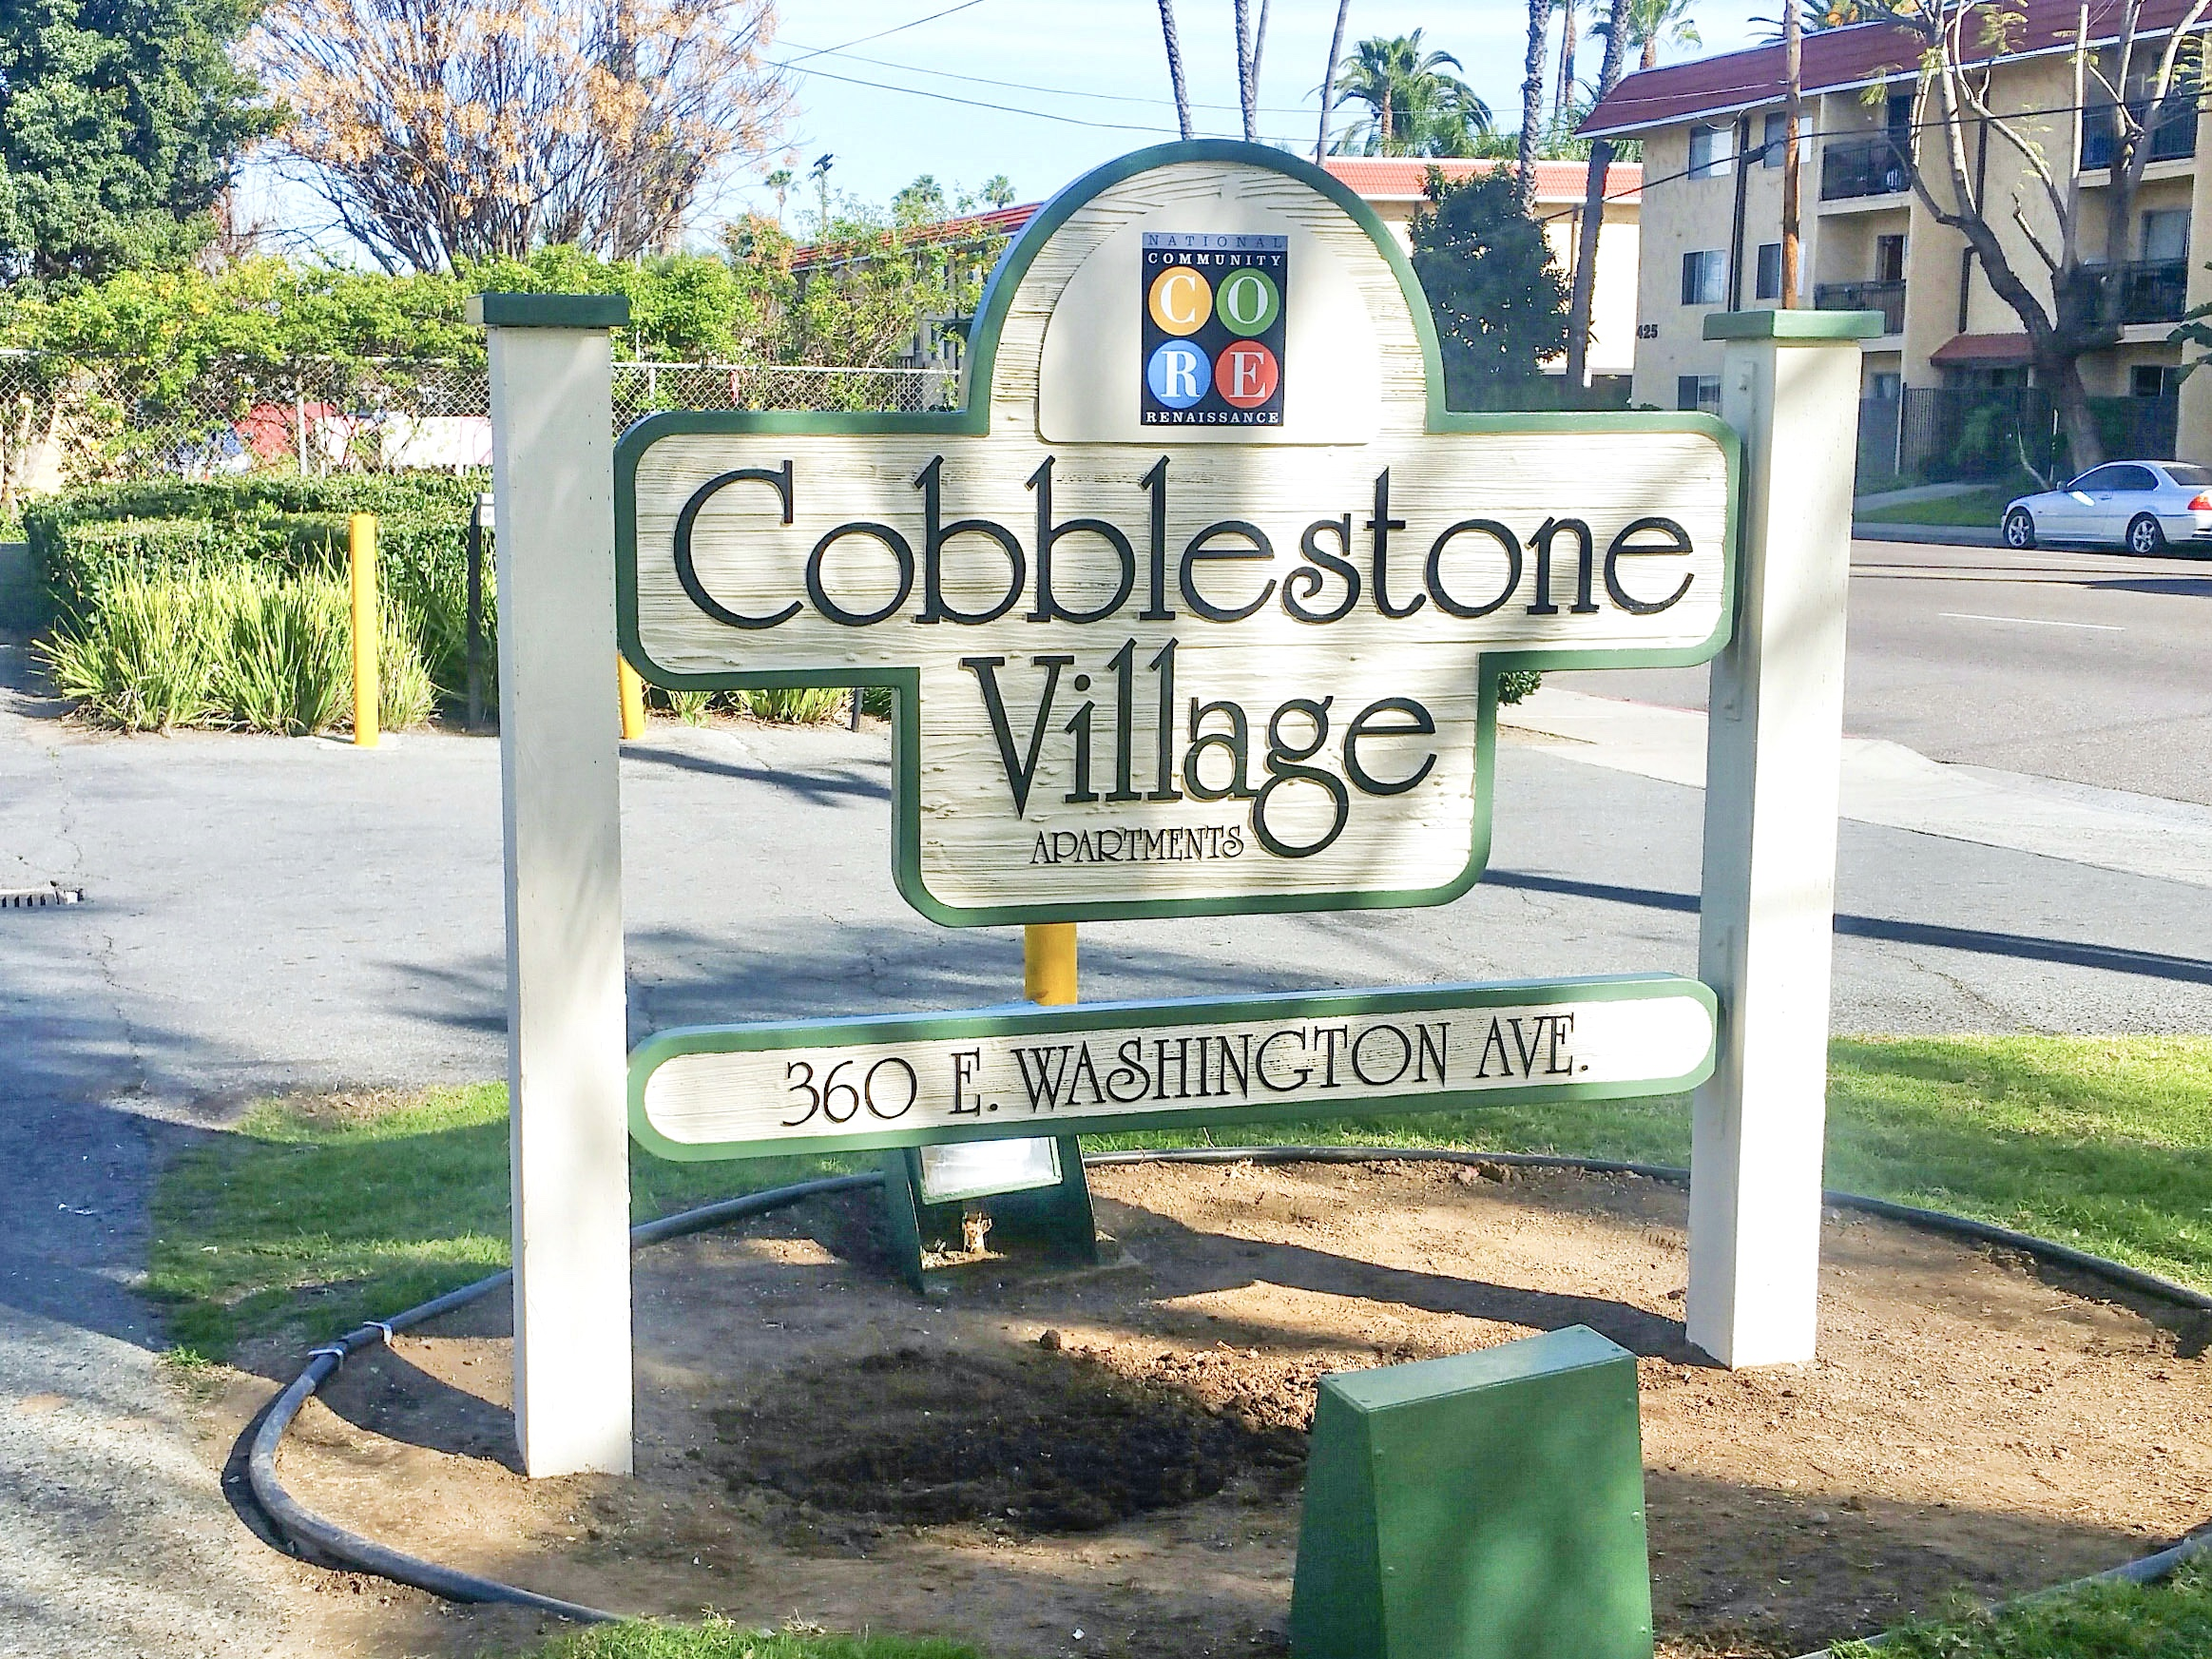 Cobblestone Village Apartments was a completely refurbished and repainted two-sided sandblasted monument sign in Escondido near San Diego CA.